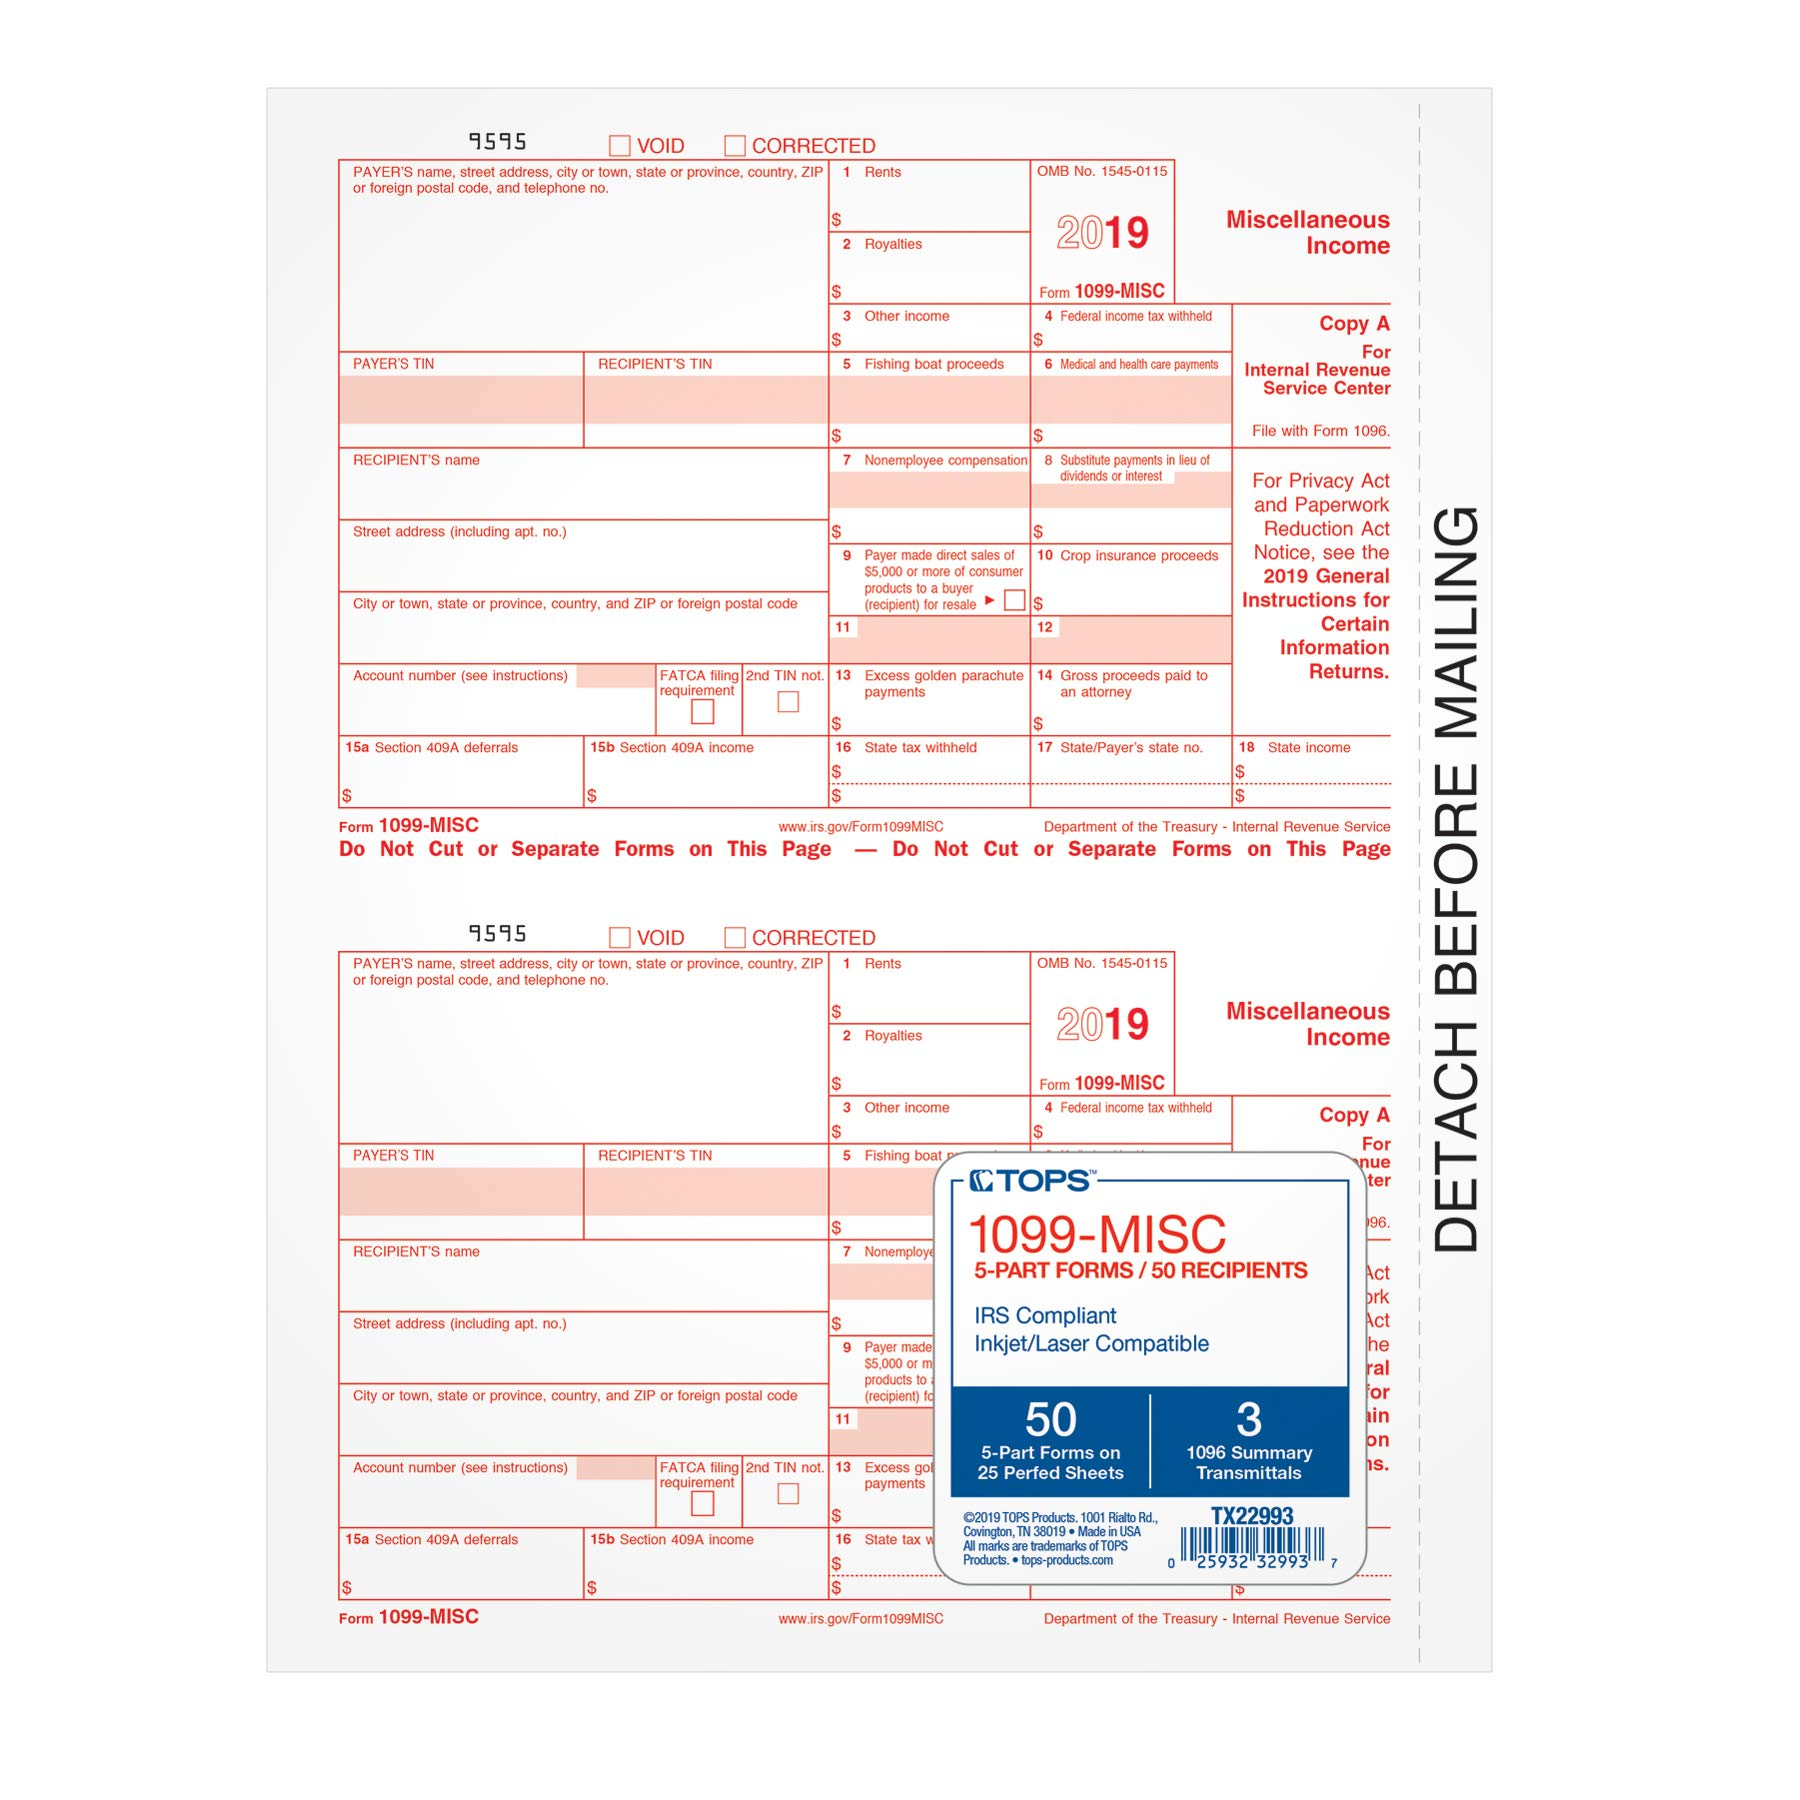 Tops 1099 MISC Inkjet/Laser Tax Forms for 2018-5-part Form Sets for 50 recipients and a 1096 Summary Transmittal Form by TOPS